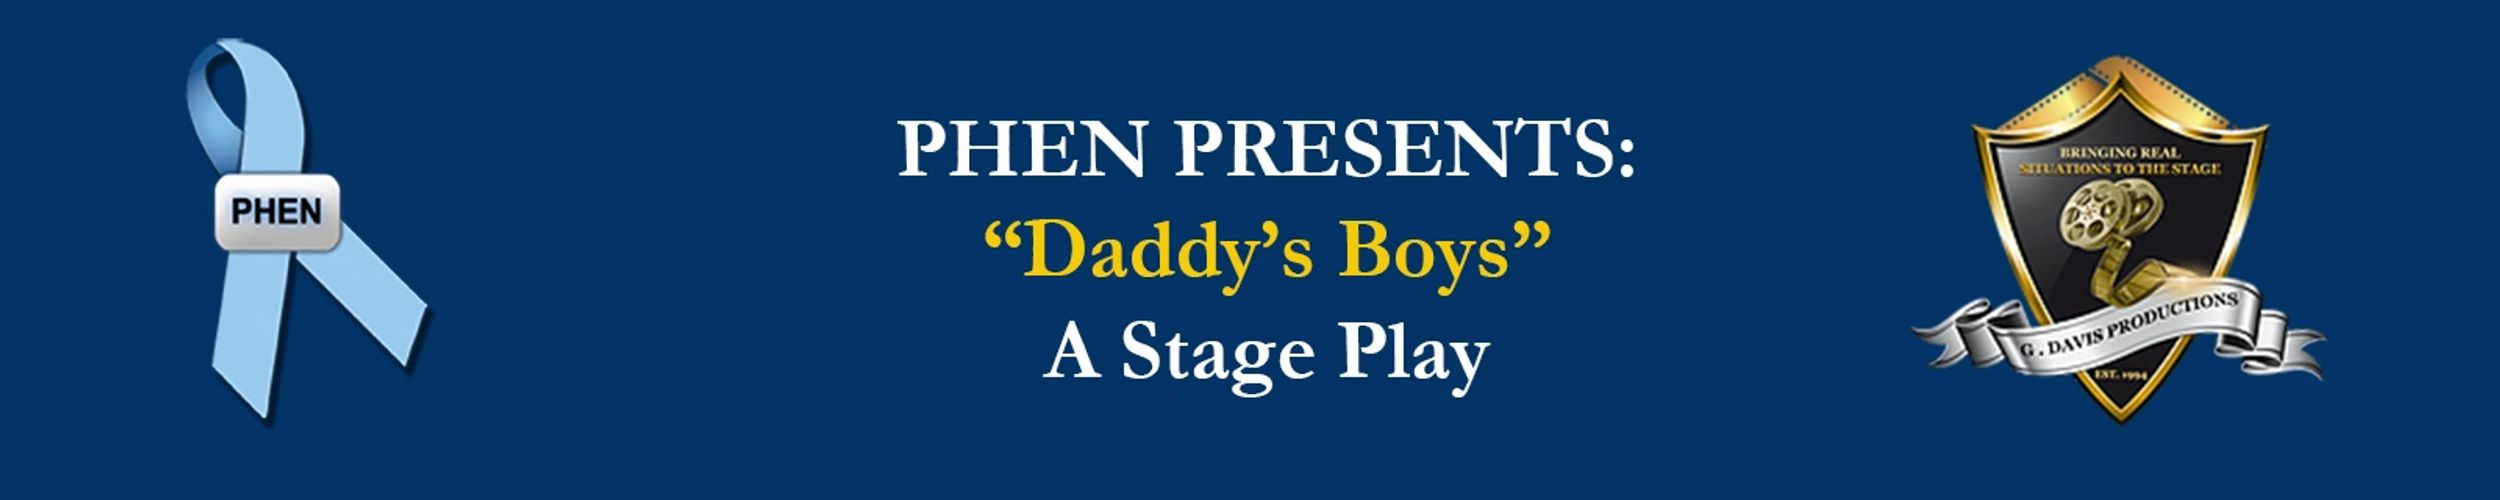 "PHEN Presents ""Daddy's Boys"" - A Stage Play"